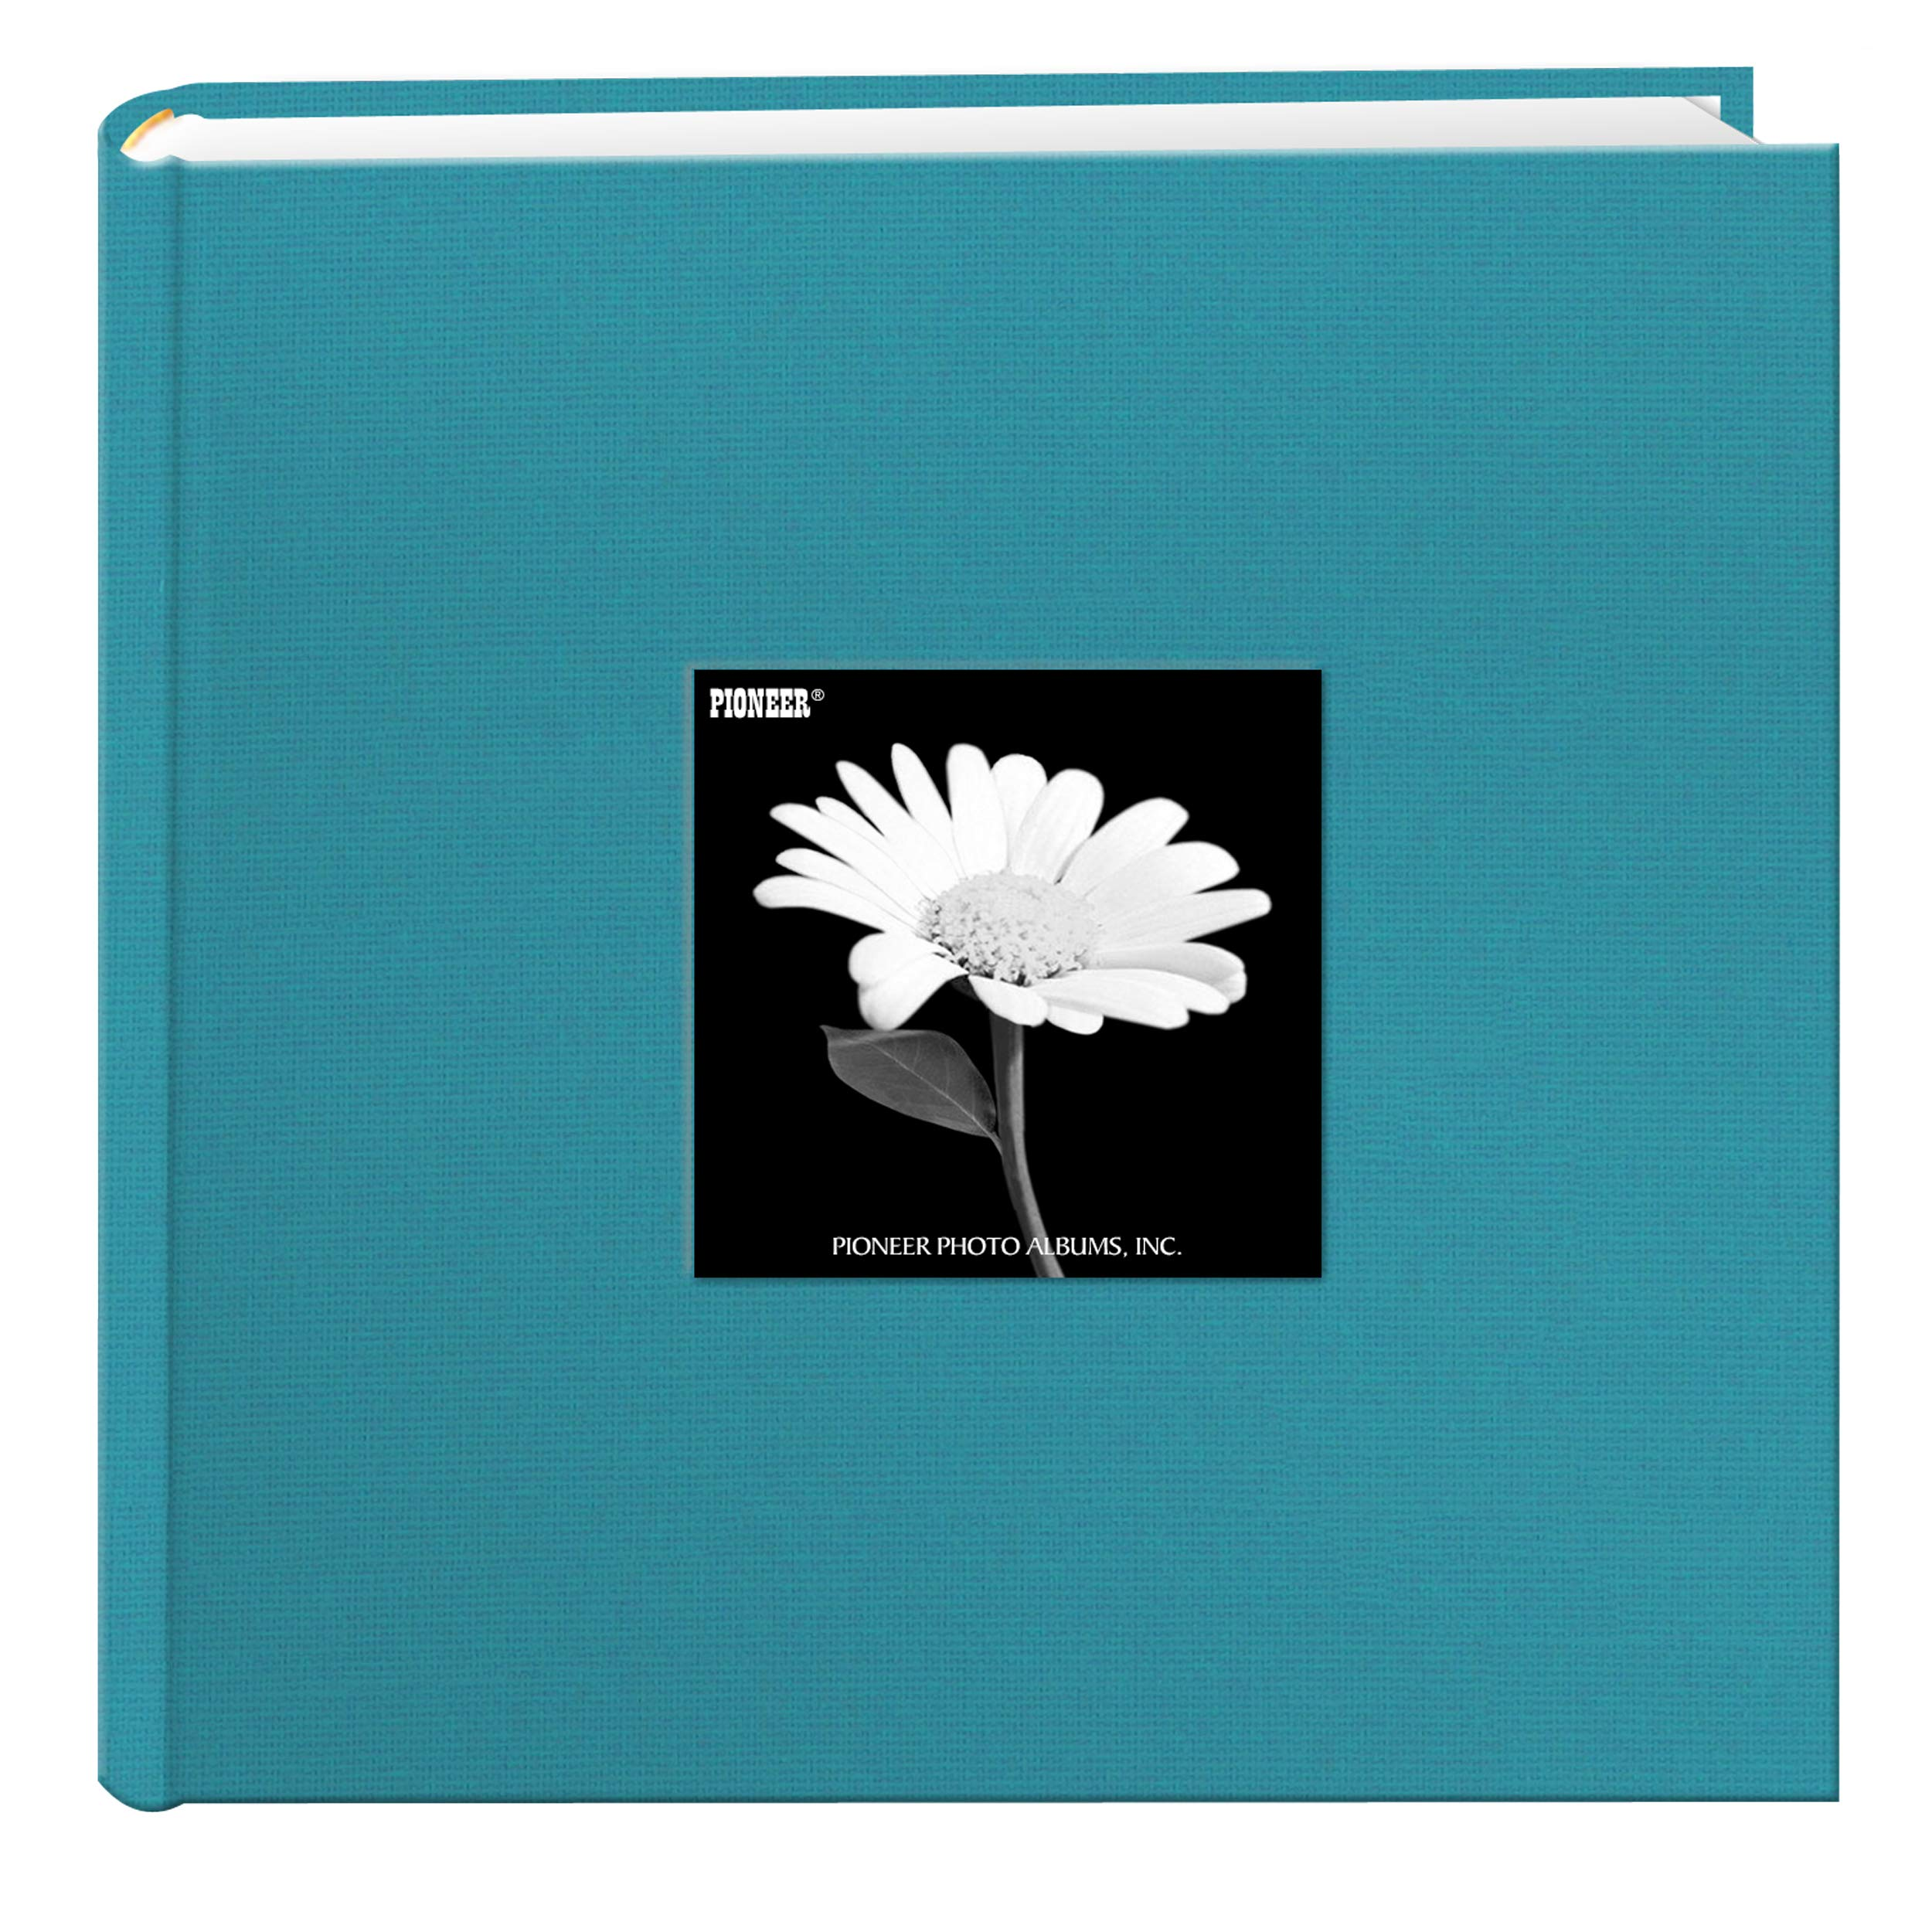 Pioneer Photo Albums Holds 200 Photos, Turquoise Blue, 4'' x 6'' by Pioneer Photo Albums